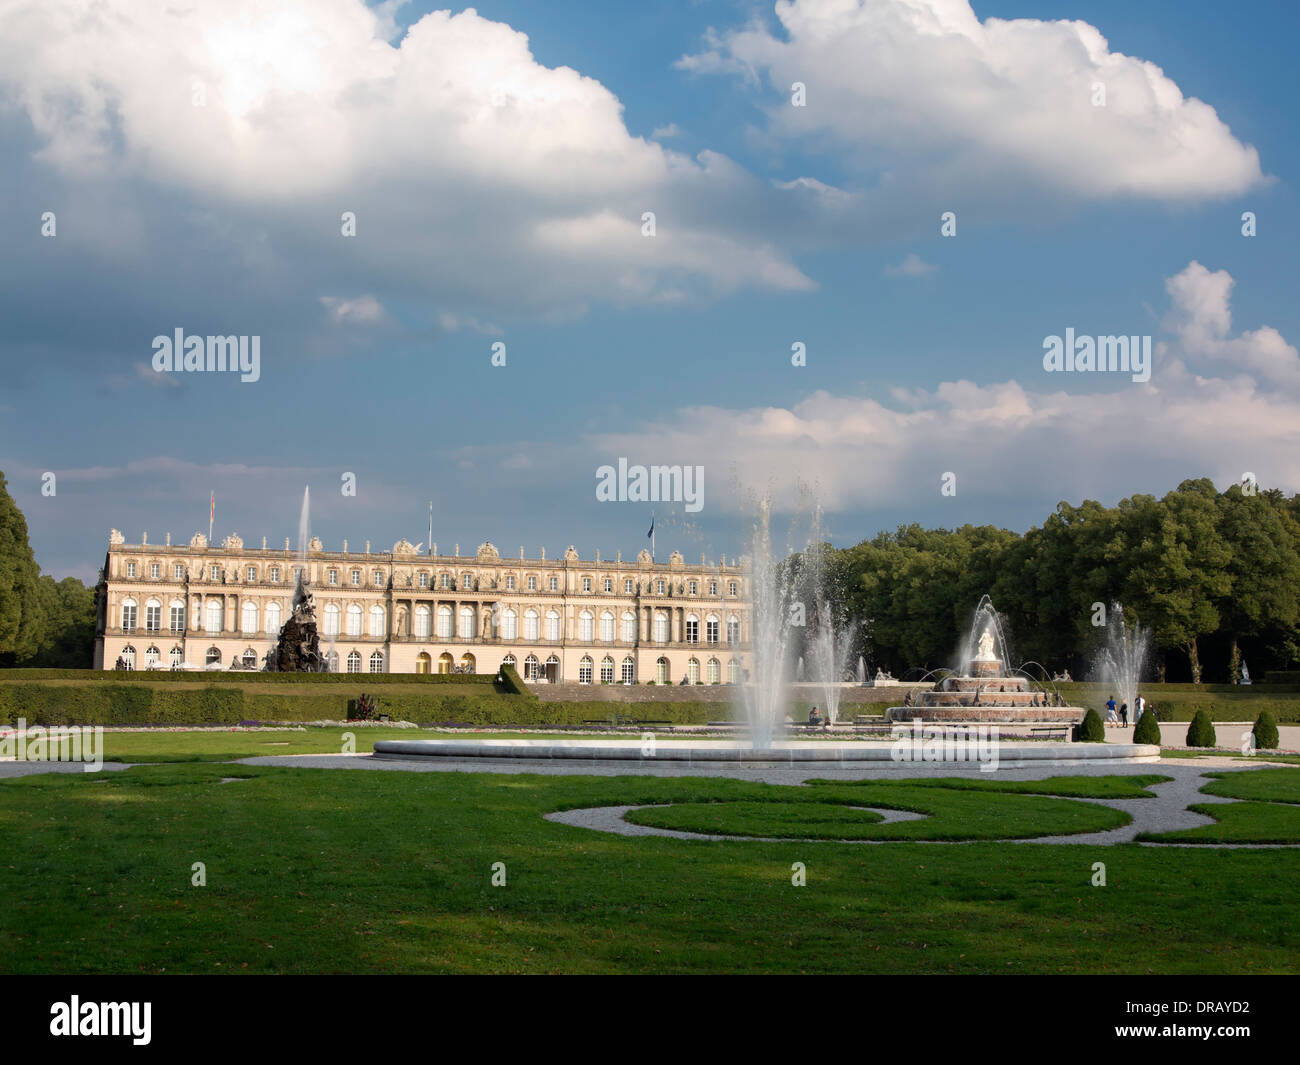 Herrenchiemsee Palace, Bavaria - Stock Image